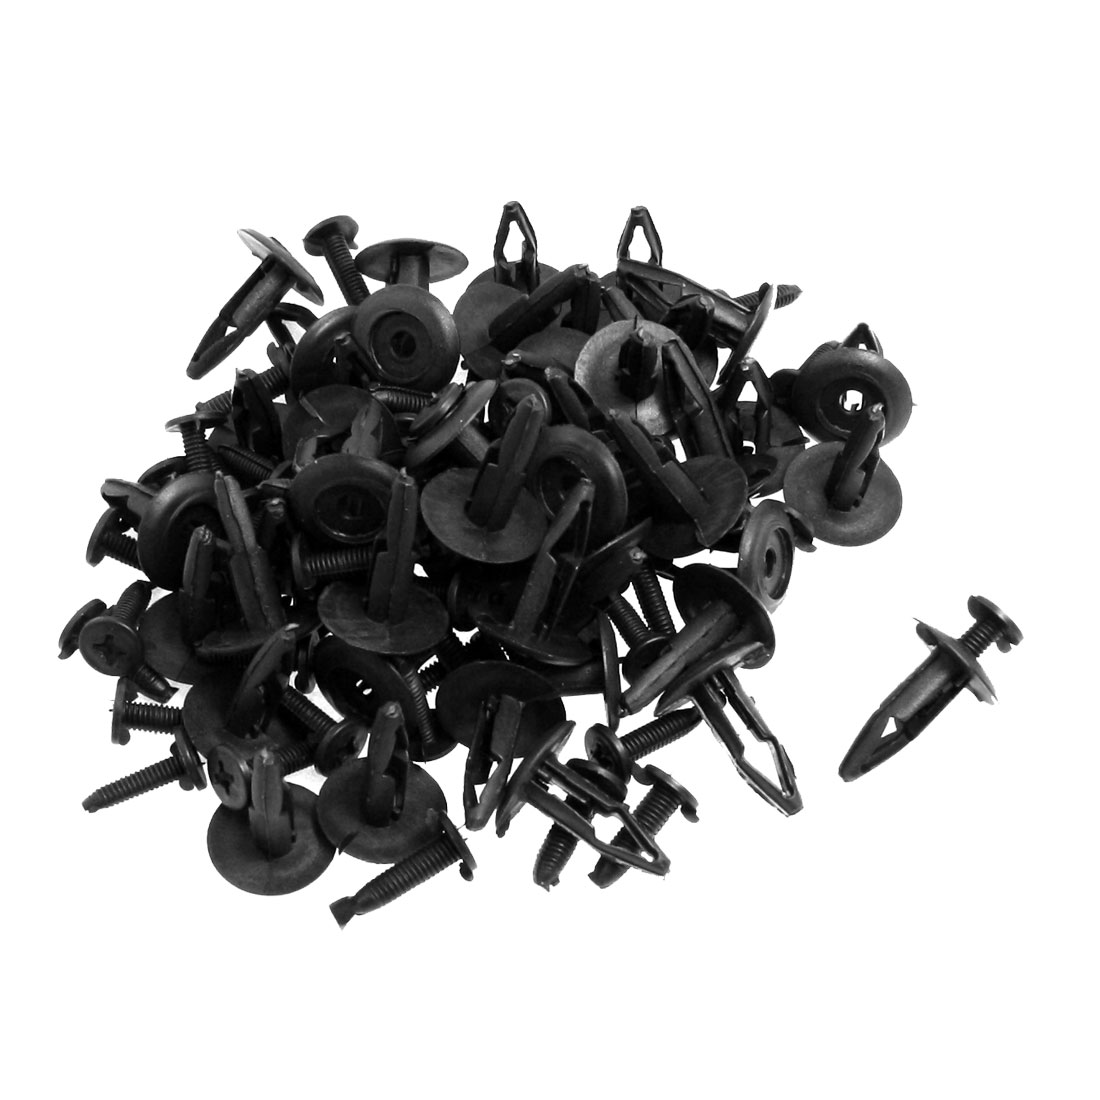 50 Pcs 7mm Hole Plastic Fastener Rivet Push Type Retainer Bumper Clips Black